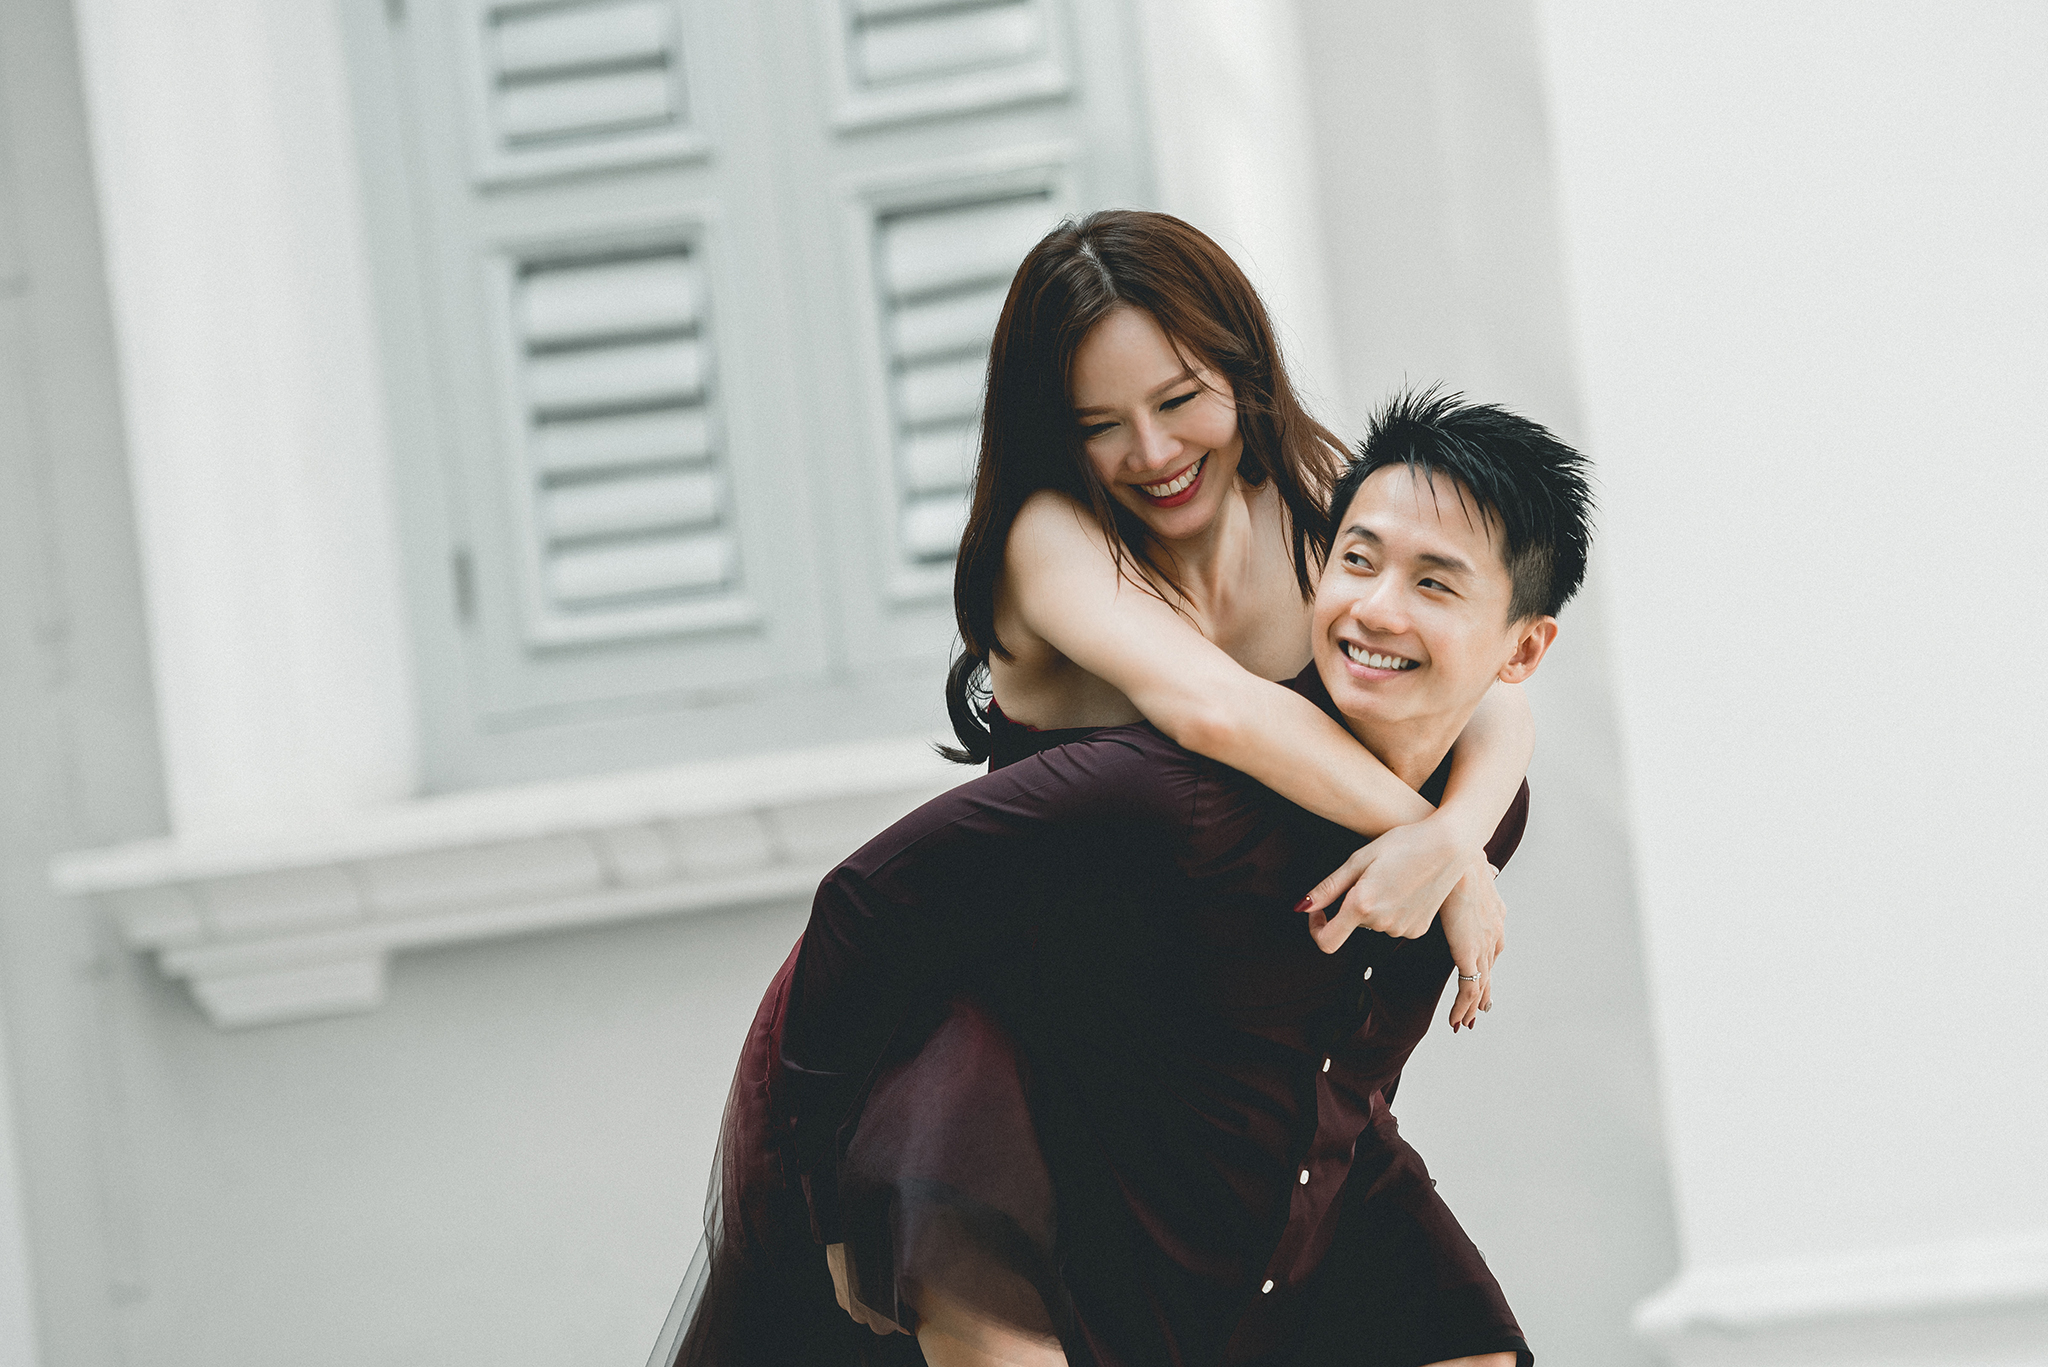 Prewedding Nationa Gallery 00019.JPG